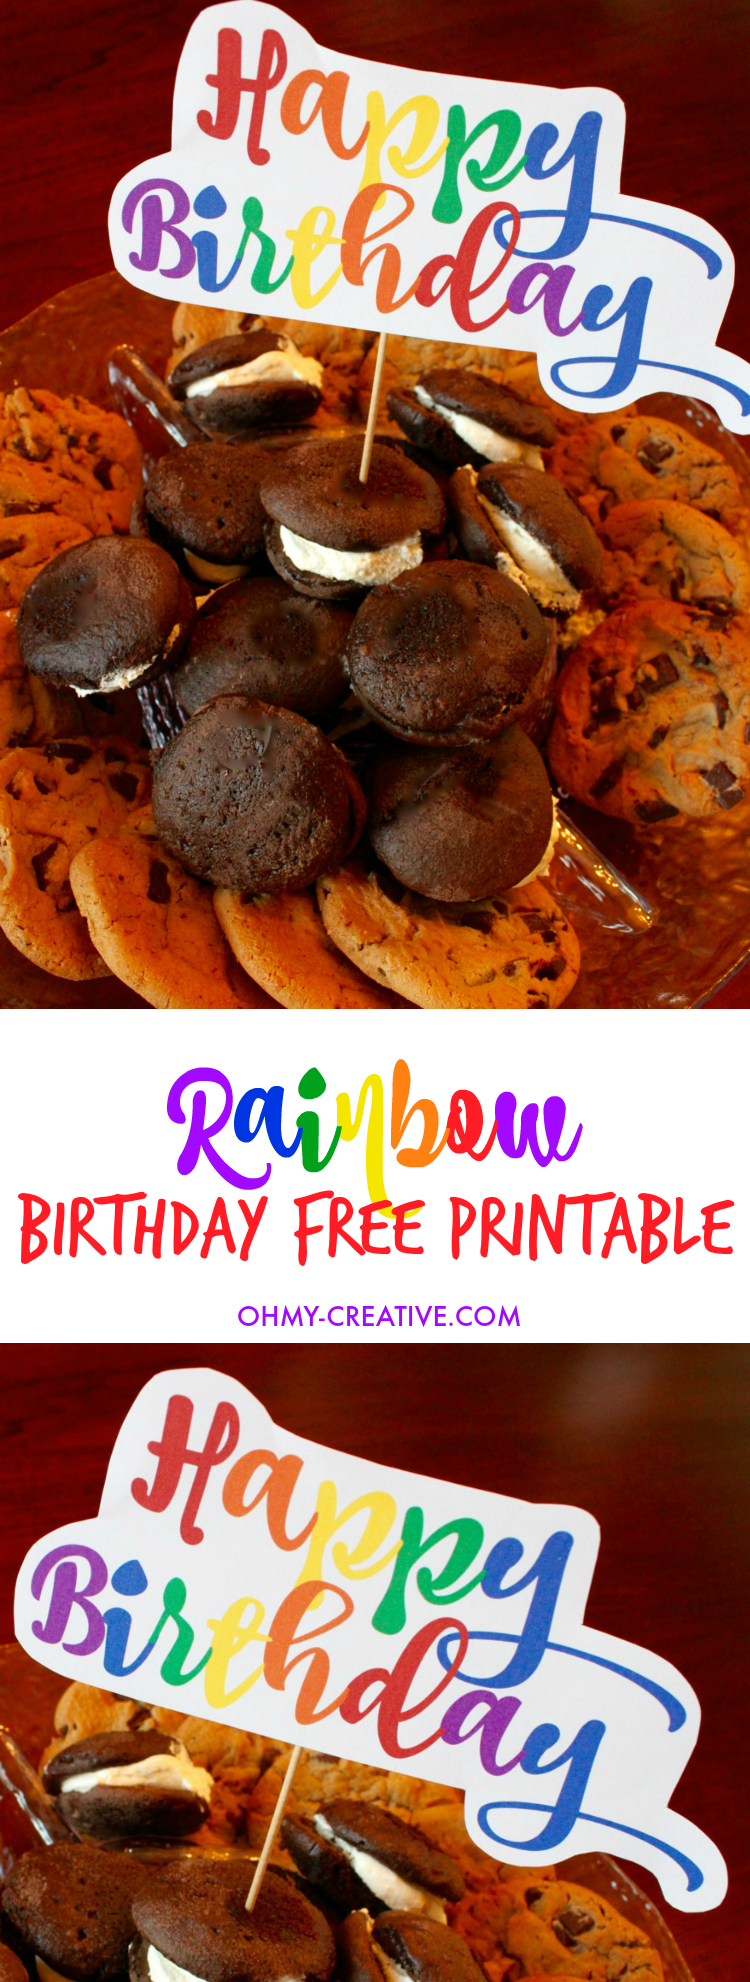 Celebrate with this Free Rainbow Happy Birthday Printable Treat Topper perfect for birthday parties, birthday cakes or any birthday treats! A great BIRTHDAY FREE PRINTABLE! | OHMY-CREATIVE.COM